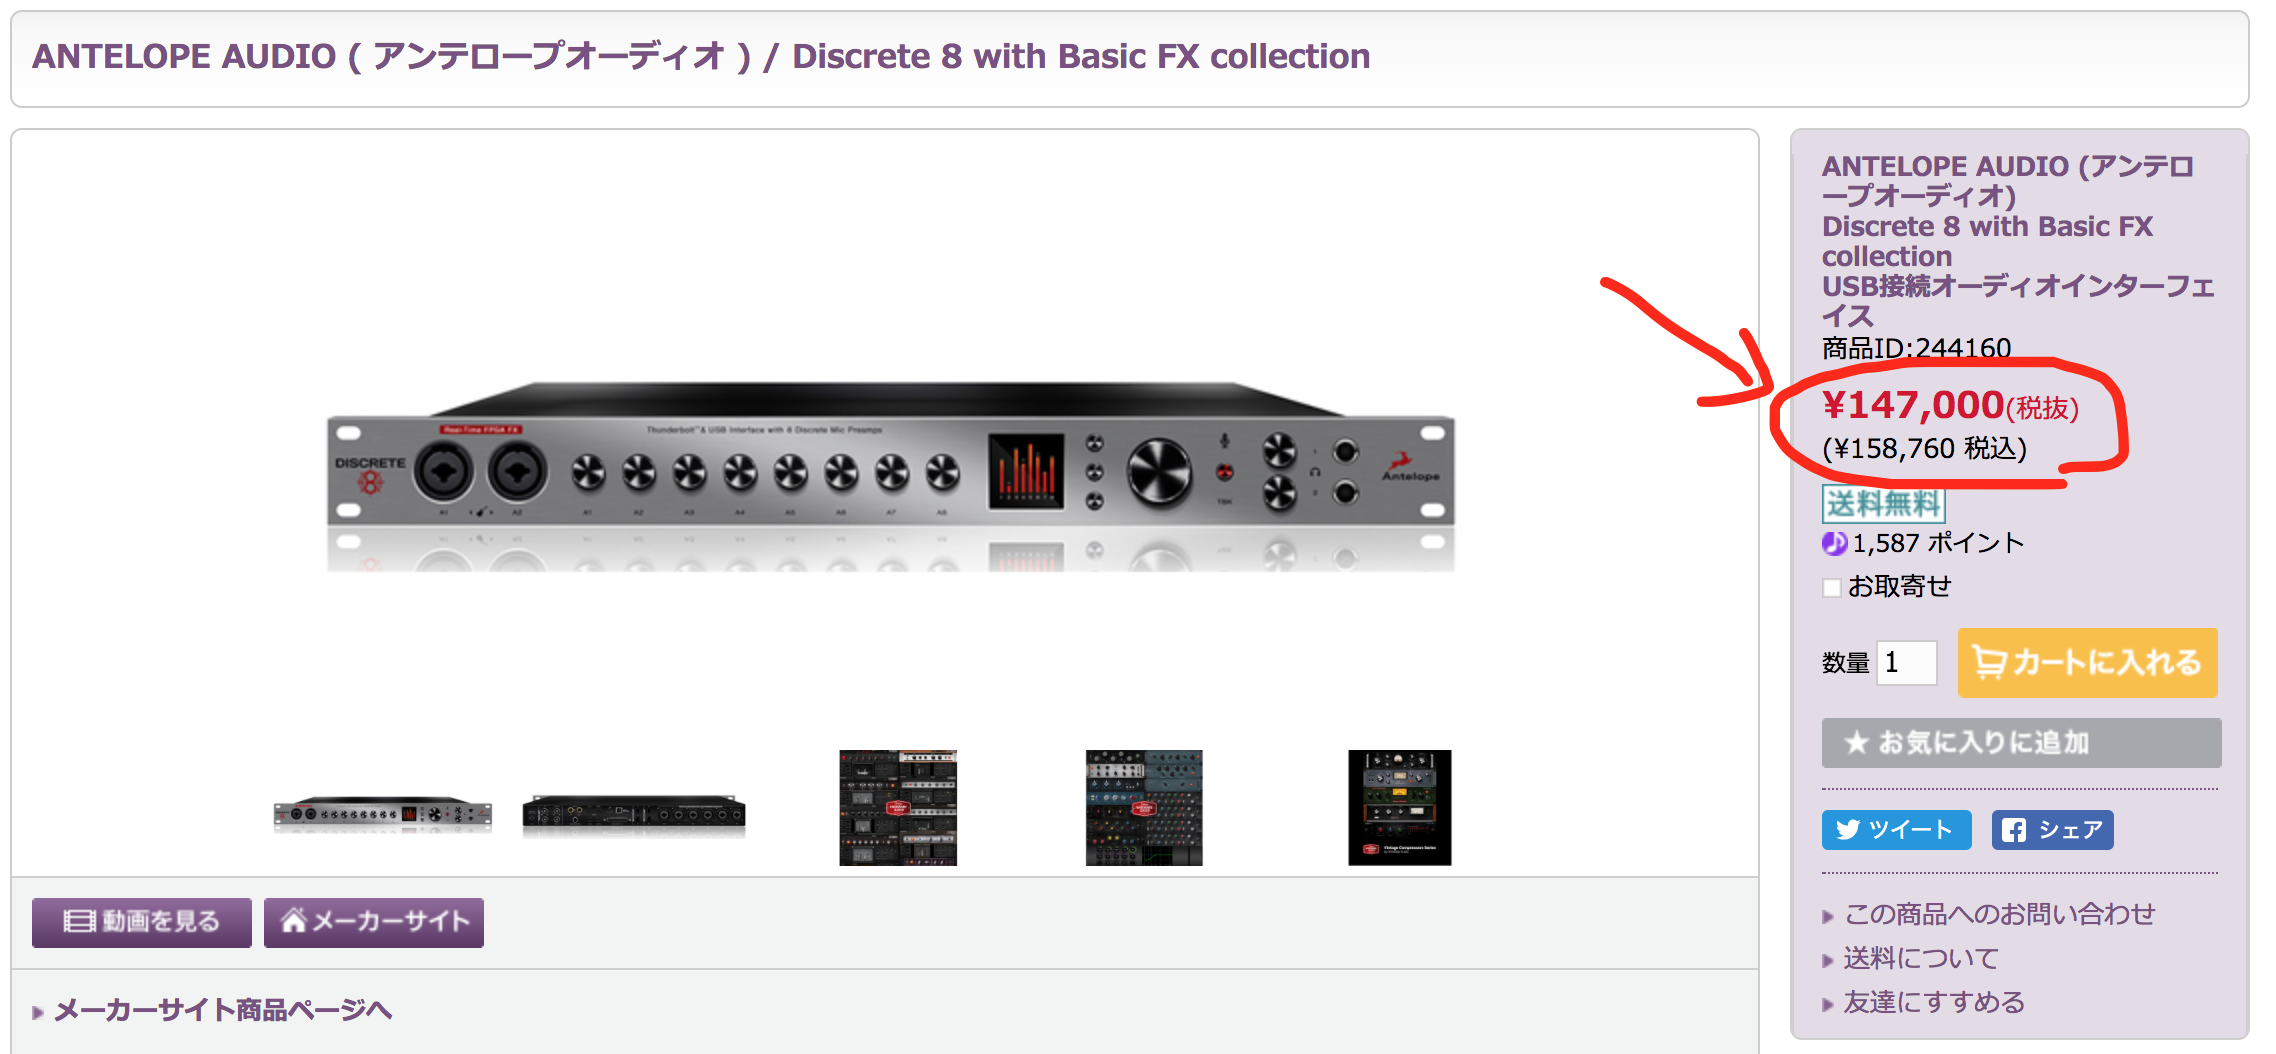 ANTELOPE AUDIO ( アンテロープオーディオ : : Discrete 8 with Basic FX collection|画像